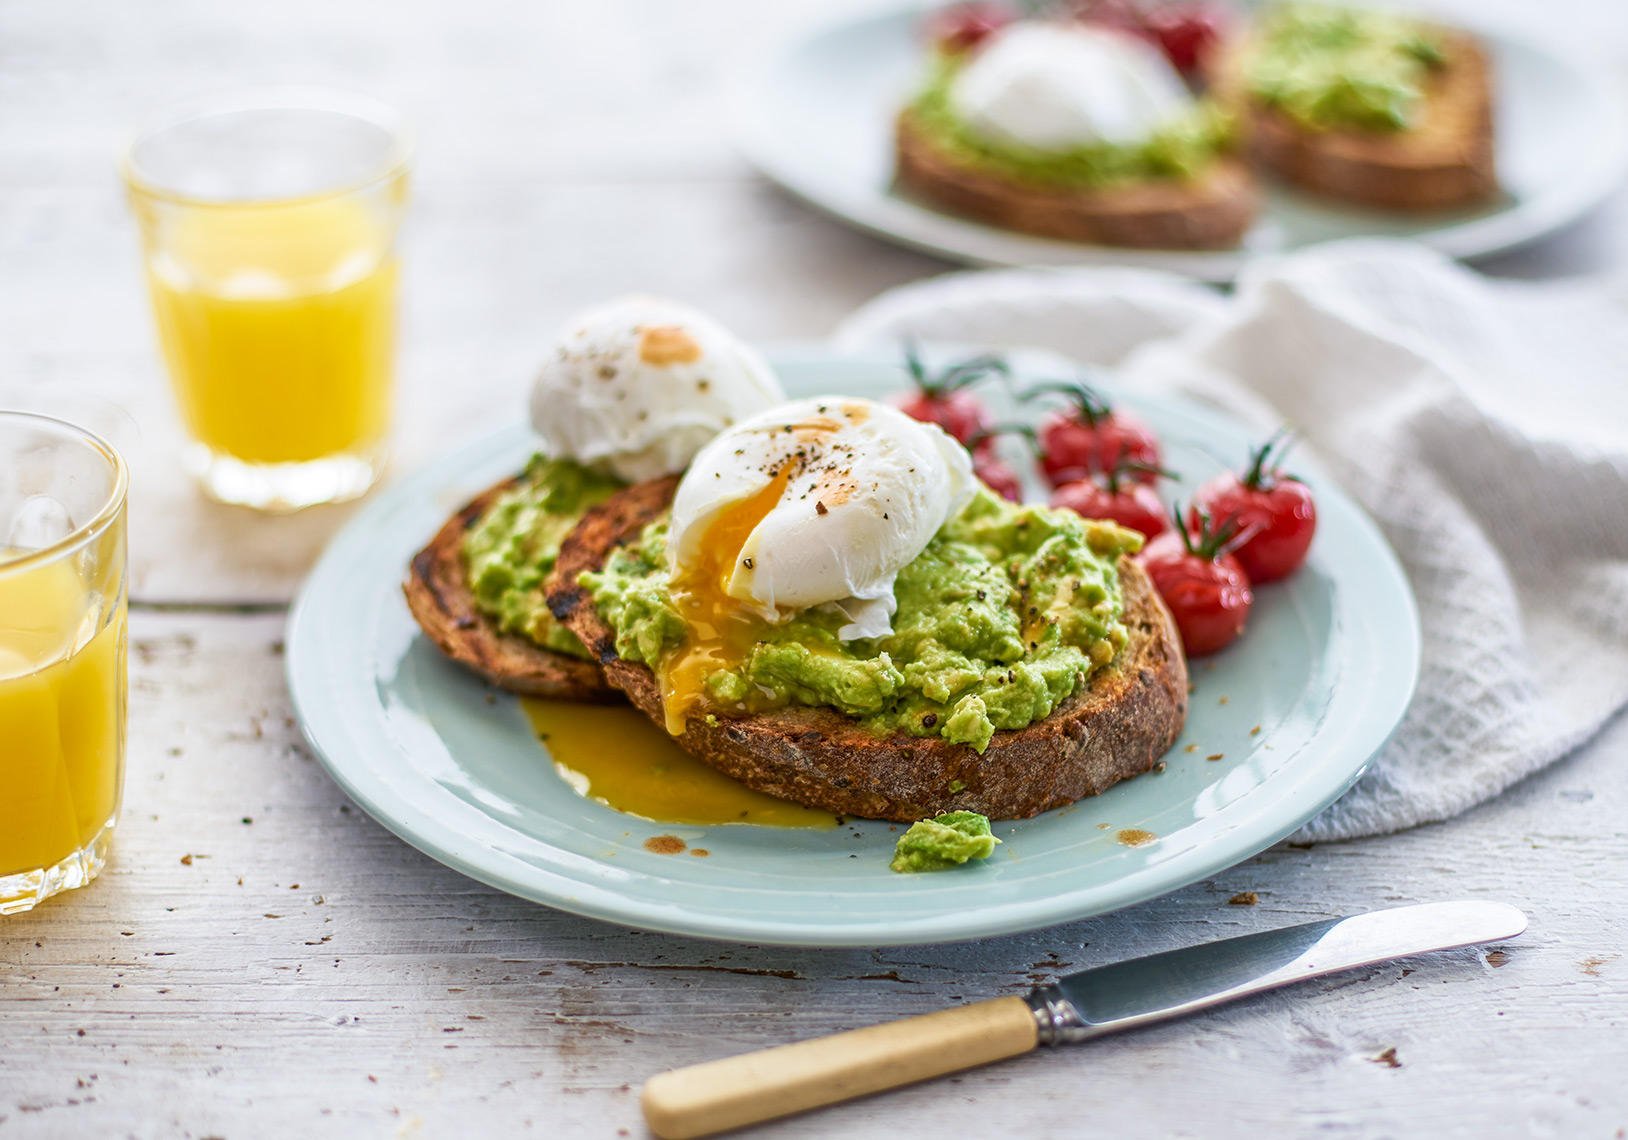 Tesco Egg and Avocado | Colin Campbell-Food Photographer